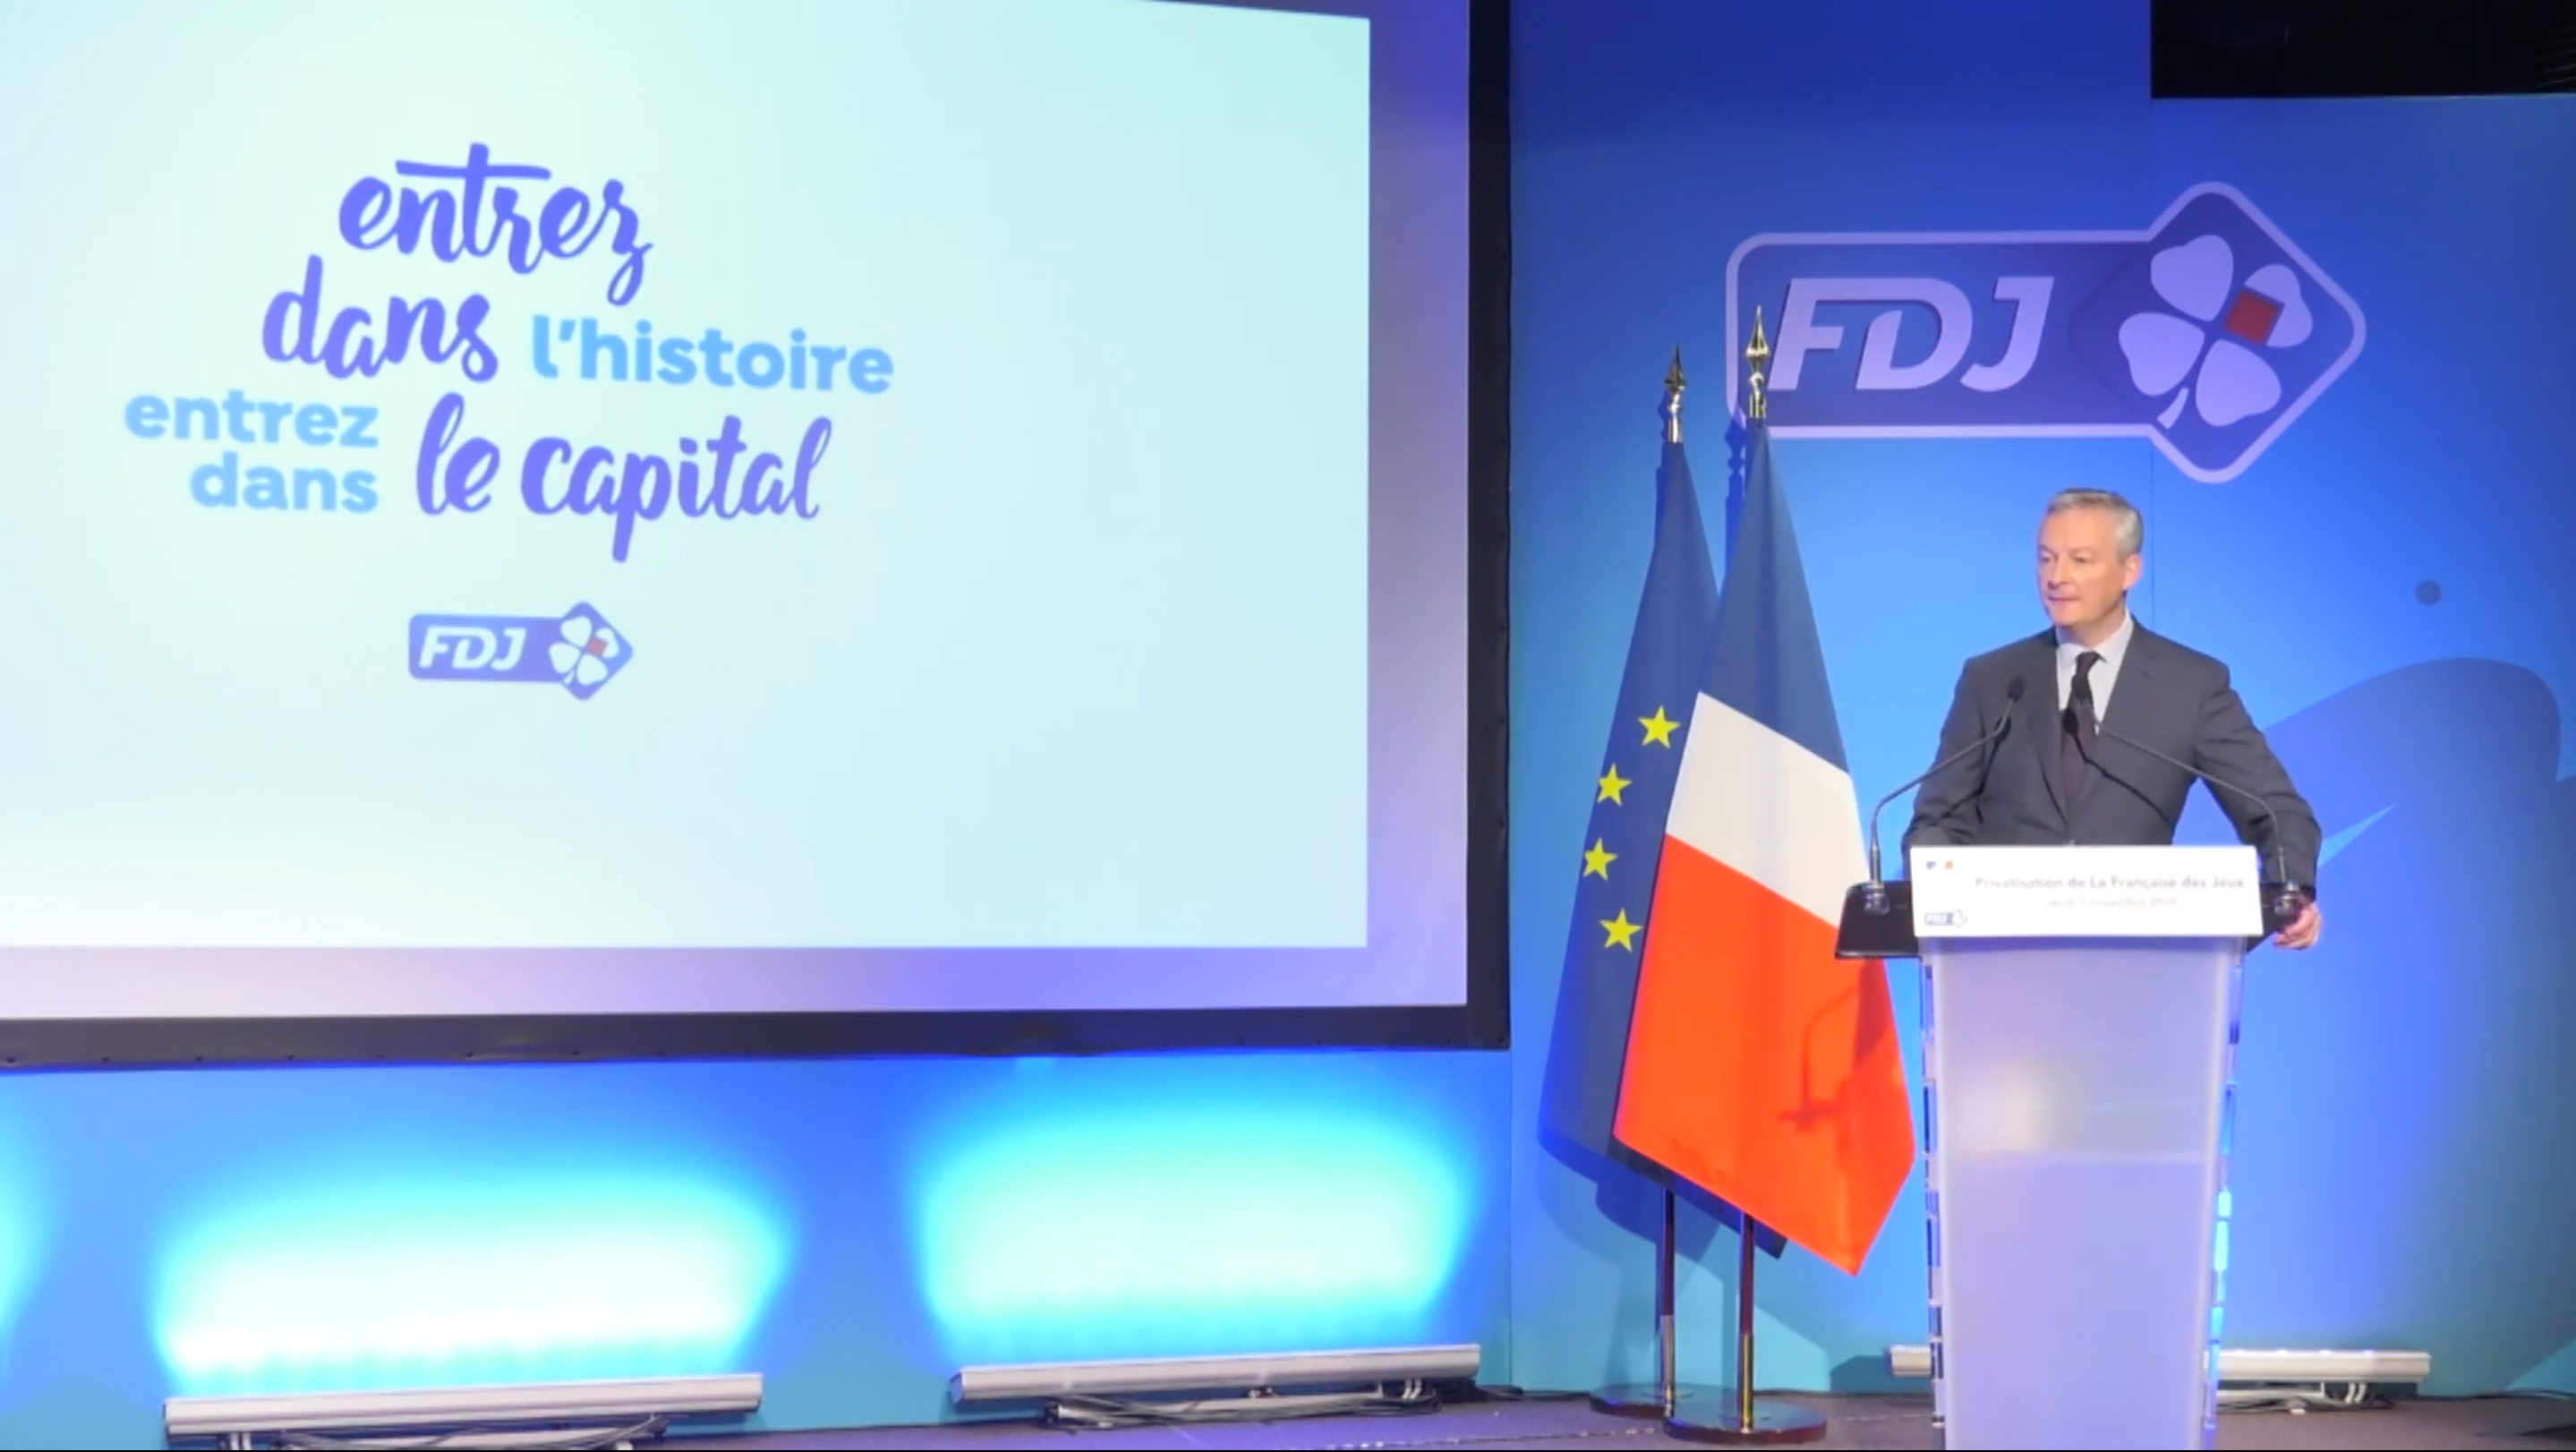 streaming live de la conférence de presse de l'introduction en bourde de la FDJ